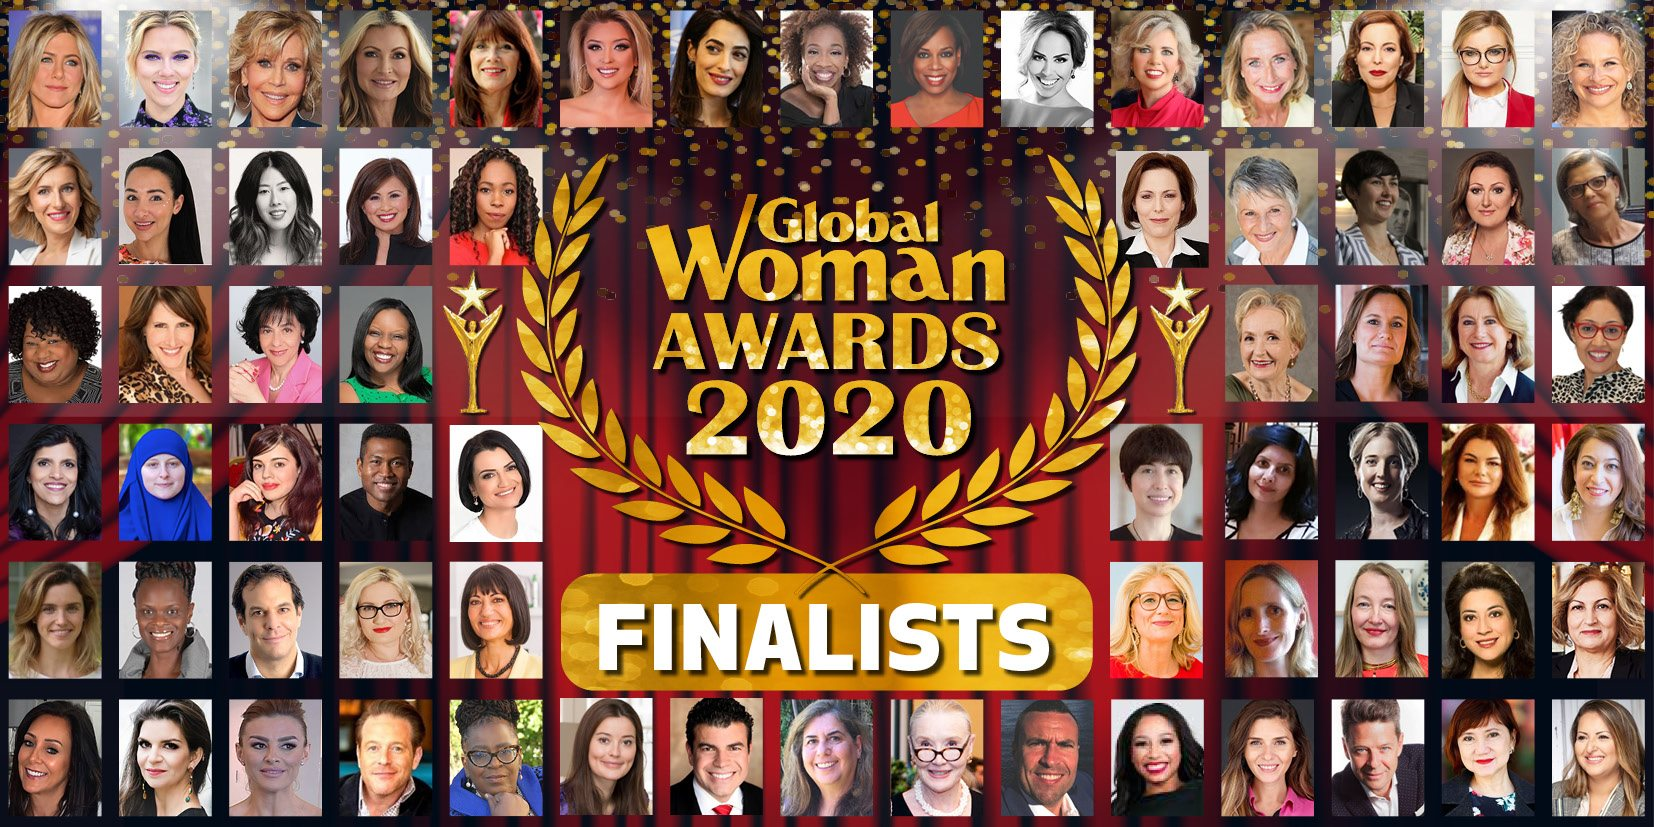 Global Woman Summit Awards   Vote Now